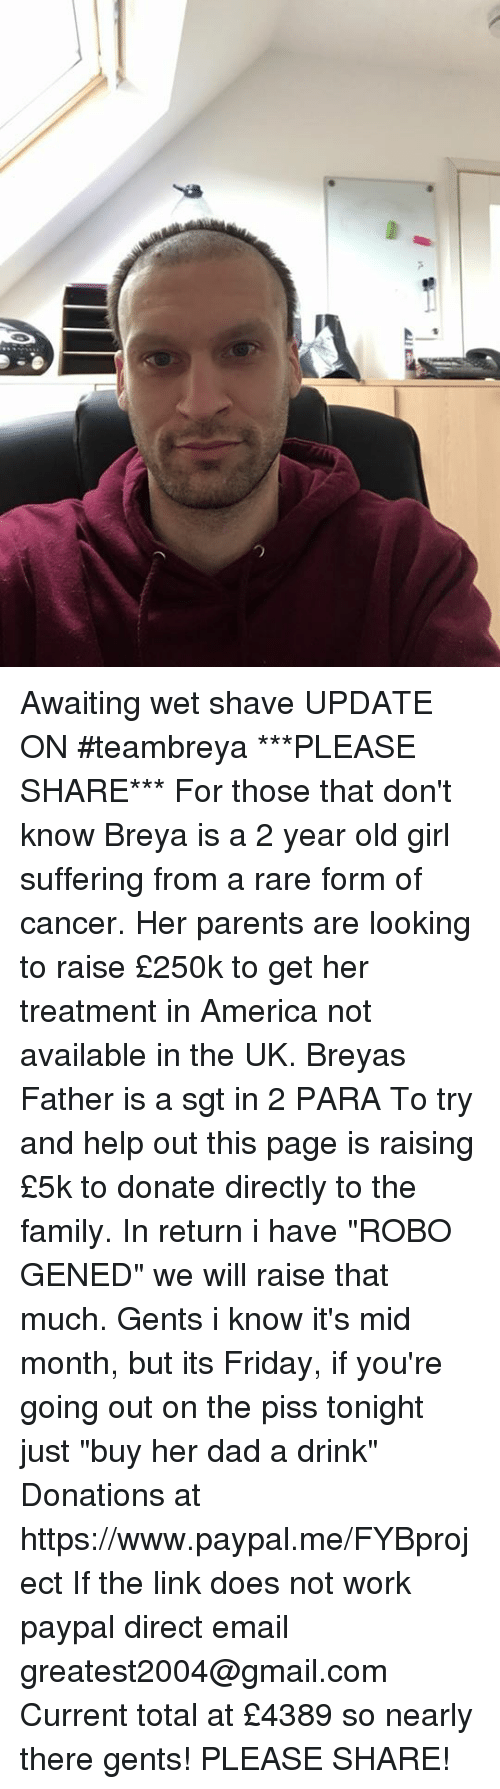 "America, Dad, and Family: Awaiting wet shave  UPDATE ON #teambreya ***PLEASE SHARE*** For those that don't know Breya is a 2 year old girl suffering from a rare form of cancer. Her parents are looking to raise £250k to get her treatment in America not available in the UK. Breyas Father is a sgt in 2 PARA To try and help out this page is raising £5k to donate directly to the family. In return i have ""ROBO GENED"" we will raise that much. Gents i know it's mid month, but its Friday, if you're going out on the piss tonight just ""buy her dad a drink"" Donations at https://www.paypal.me/FYBproject If the link does not work paypal direct email greatest2004@gmail.com Current total at £4389 so nearly there gents! PLEASE SHARE!"